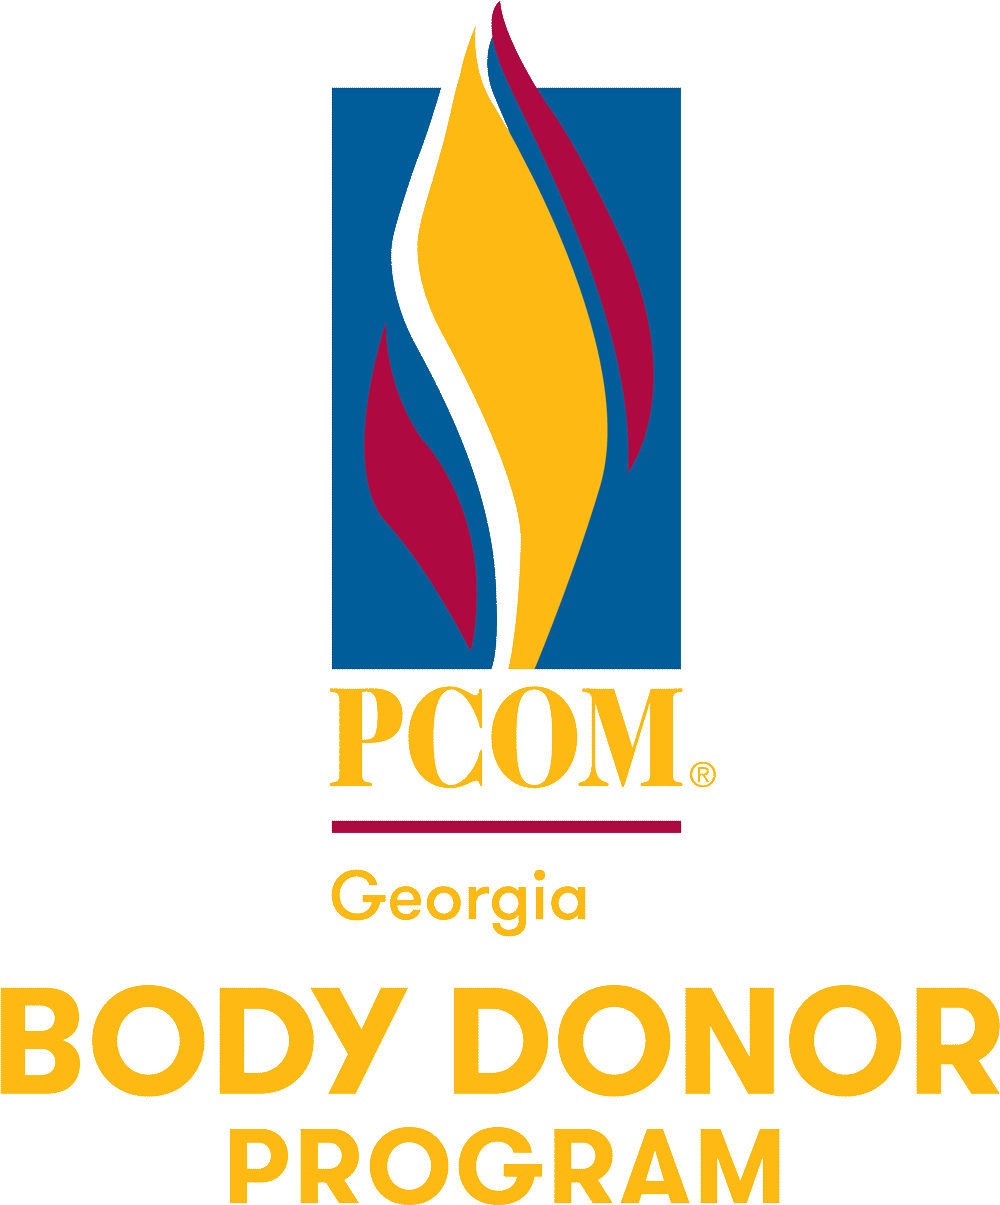 PCOM Georgia Body Donor Program logo